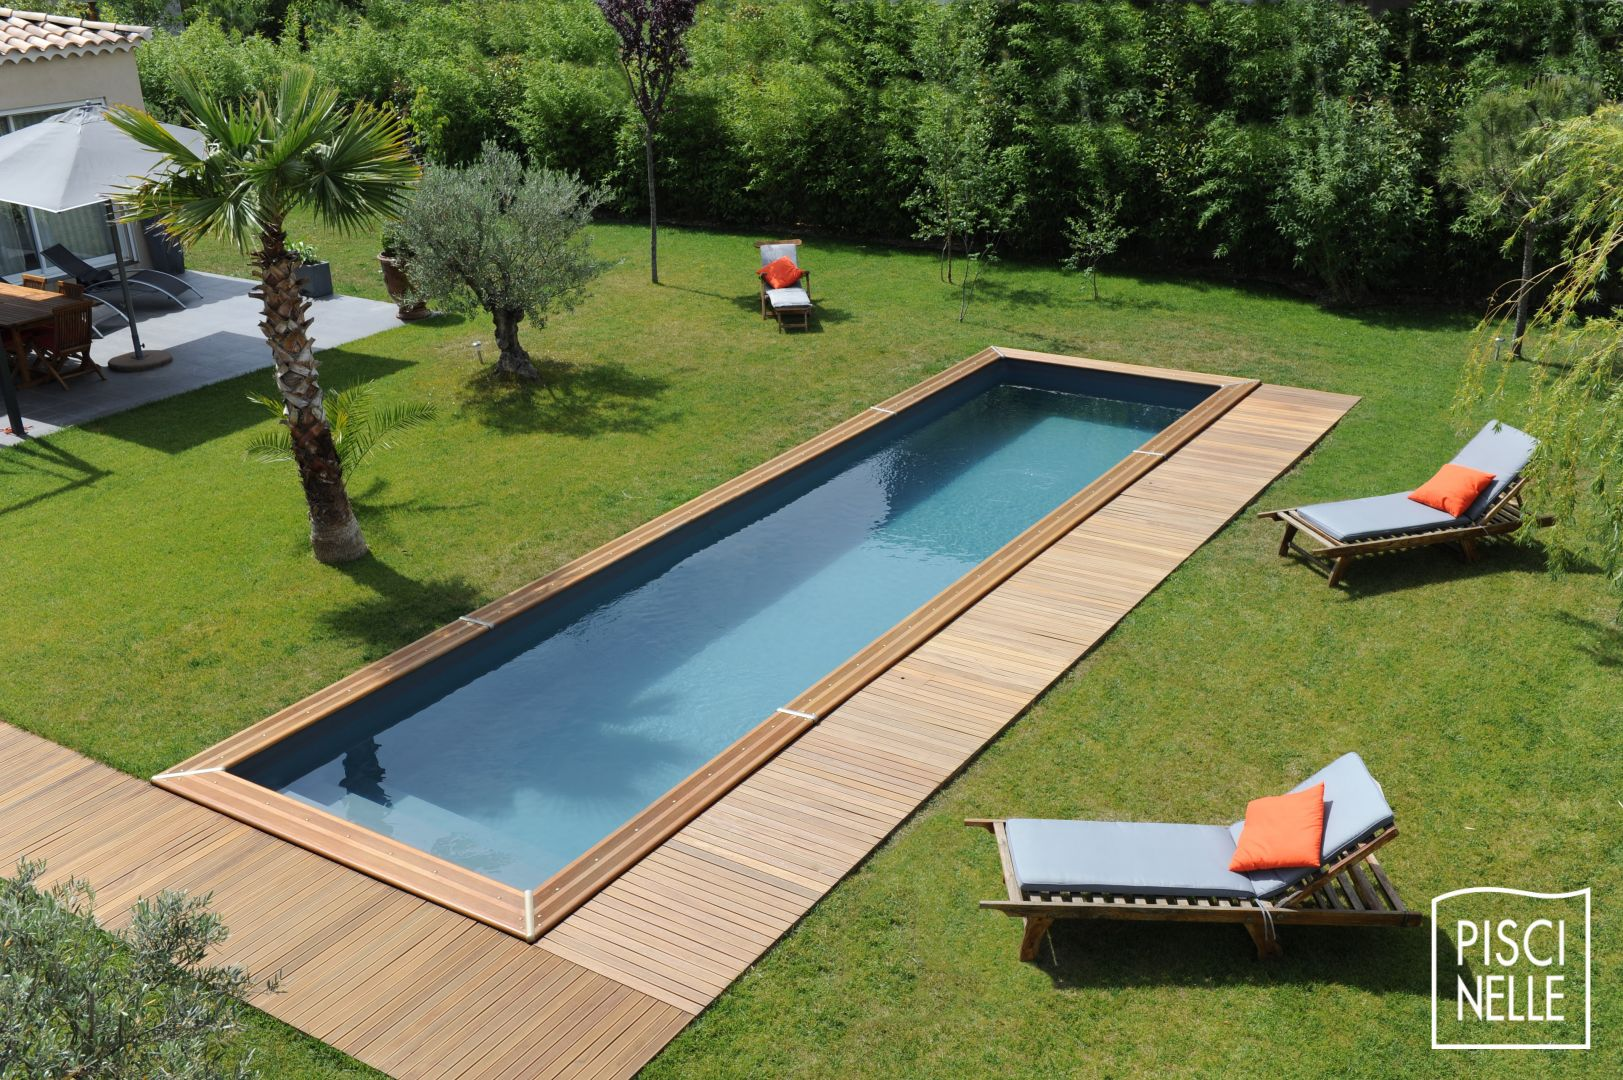 Piscine enterr e les piscines enterr es en kit par for Piscine enterree en kit